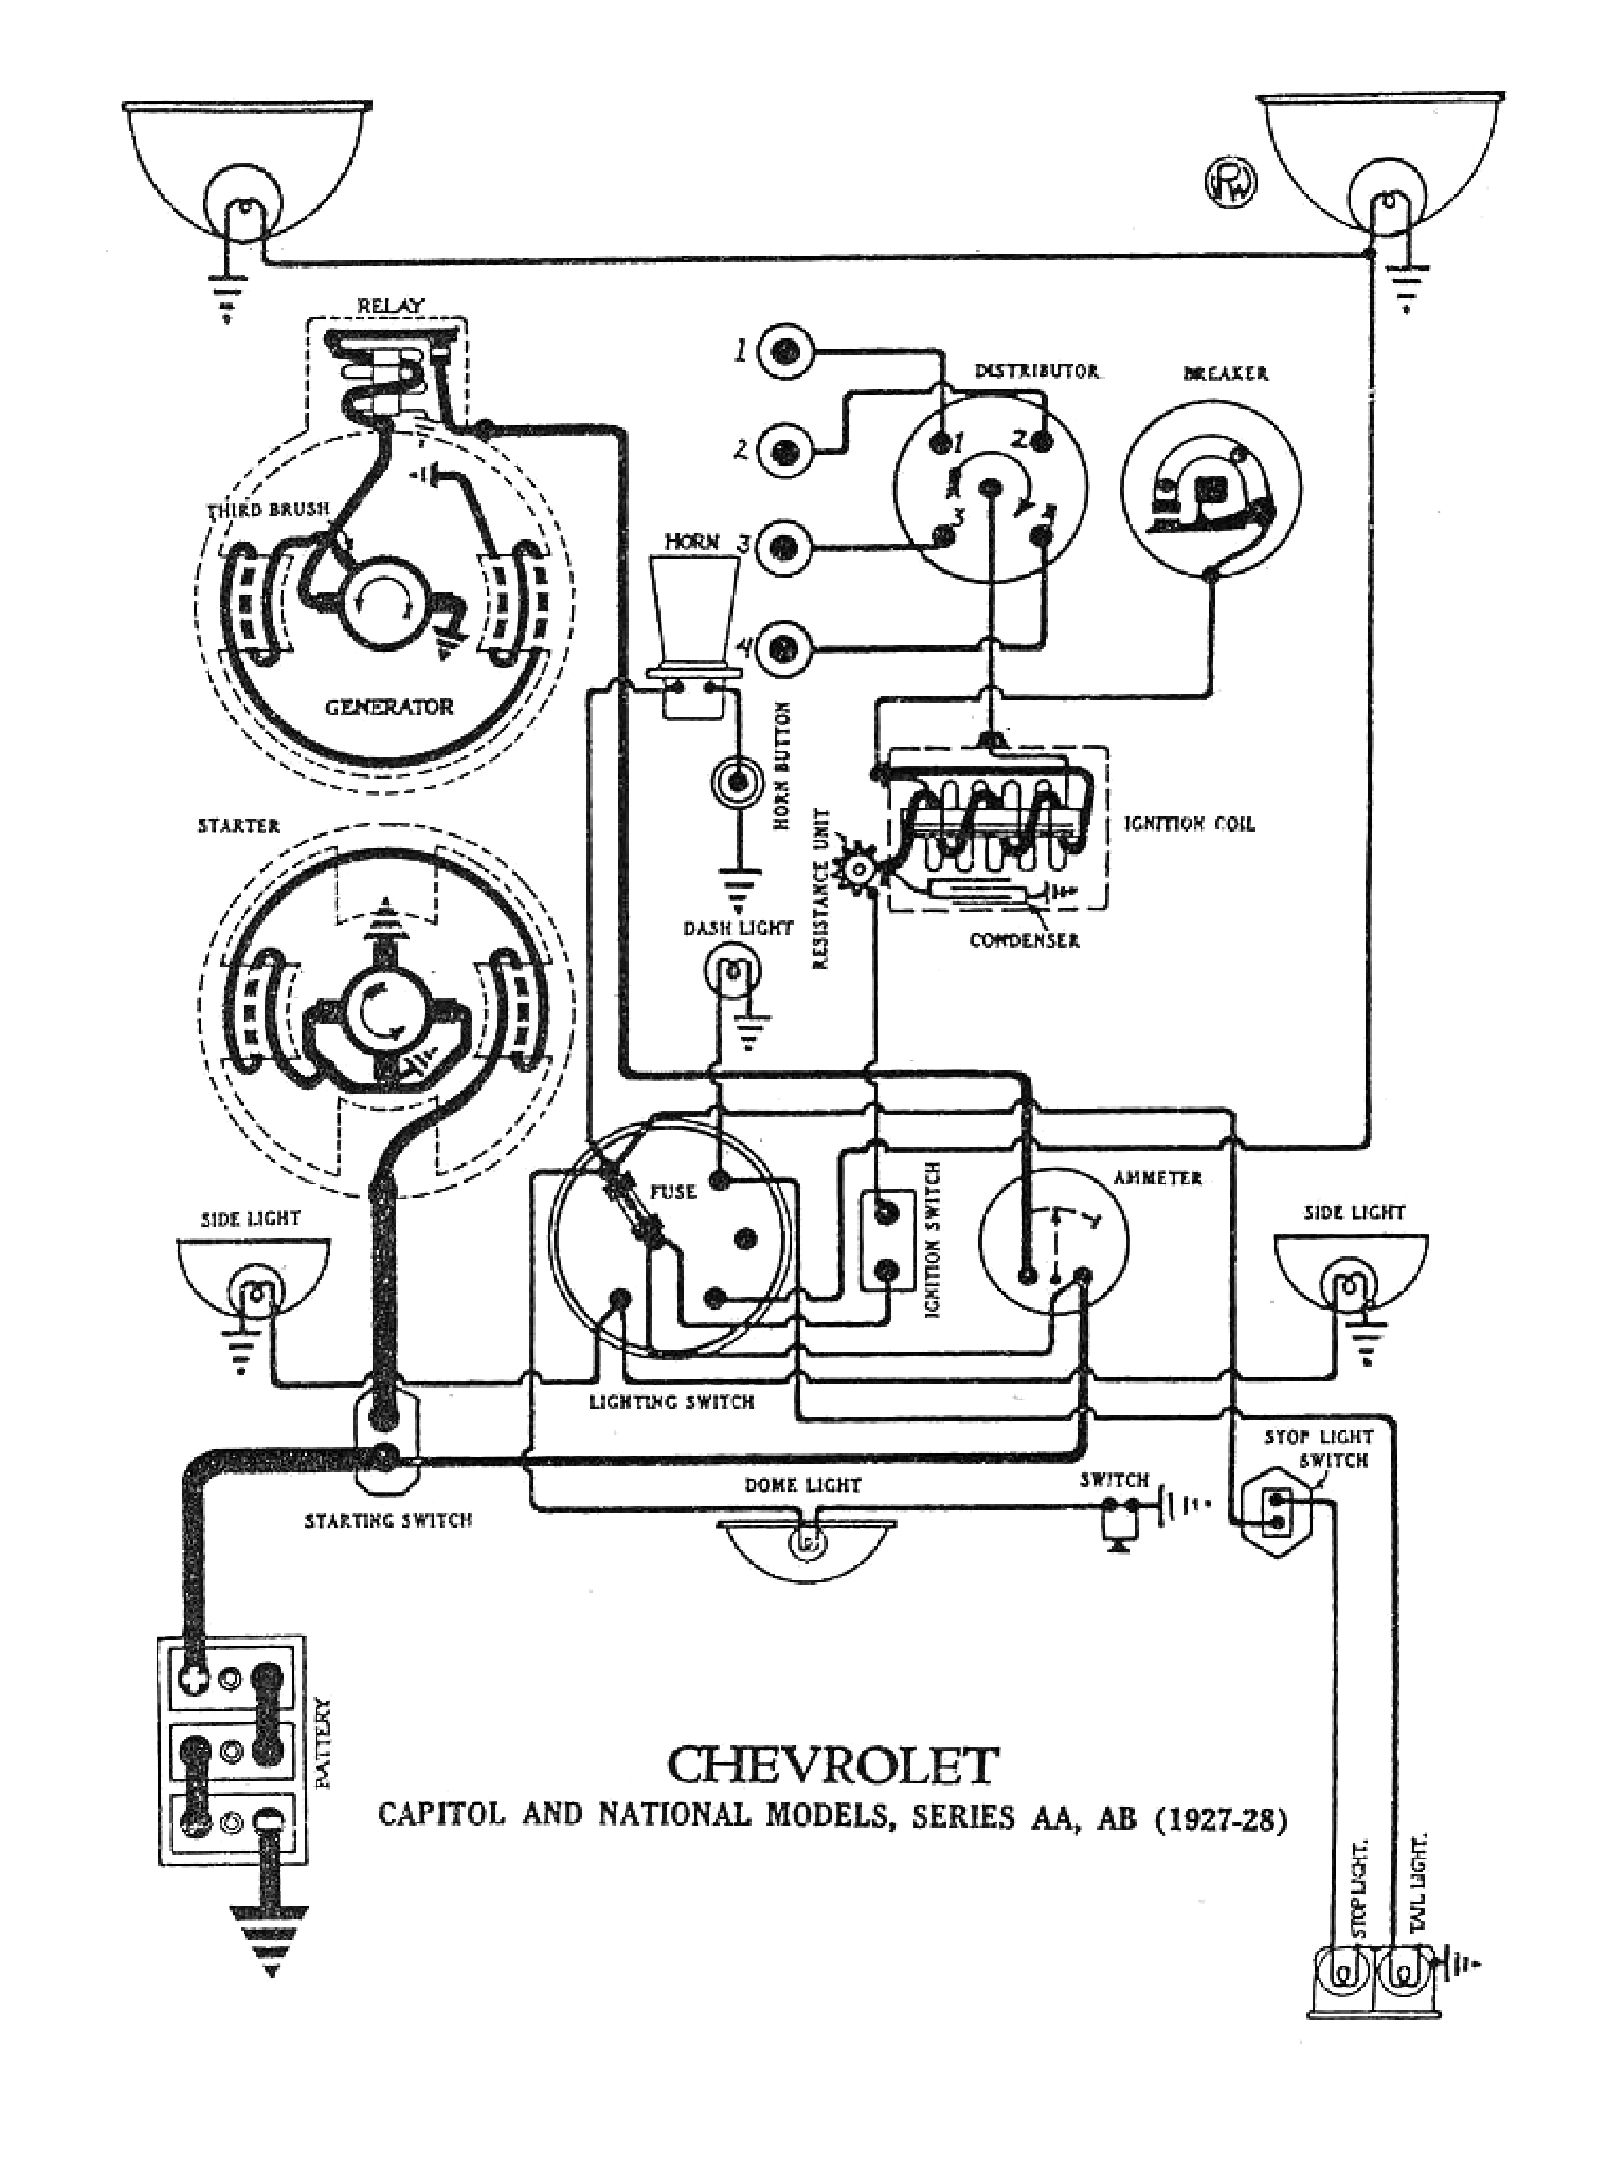 1933 Chevy Pickup Wiring Diagram Schematic Reinvent Your 1992 K1500 Diagrams Rh Oldcarmanualproject Com 2006 Silverado Schematics